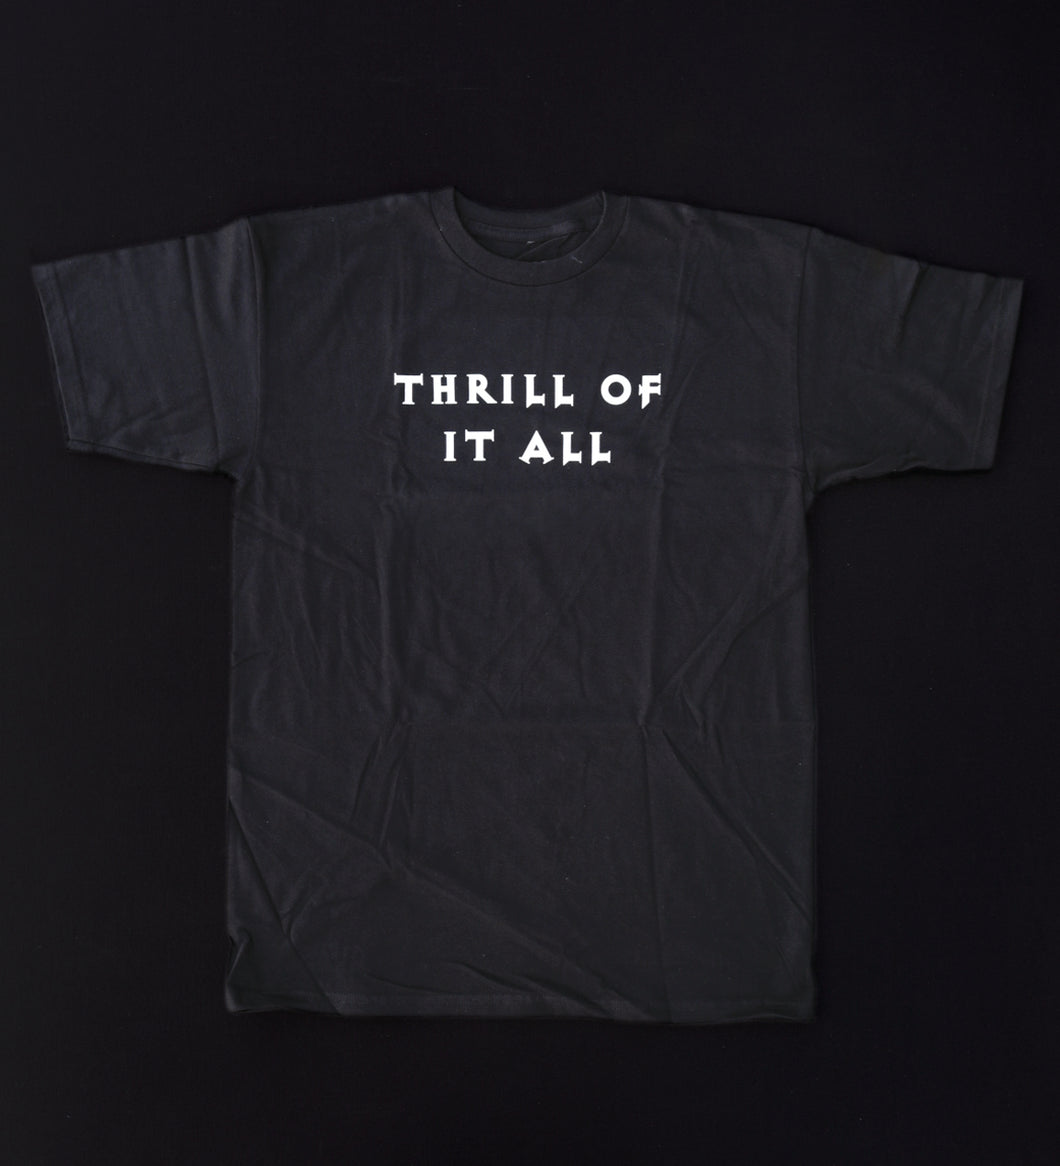 'THRILL OF IT ALL' T-SHIRT